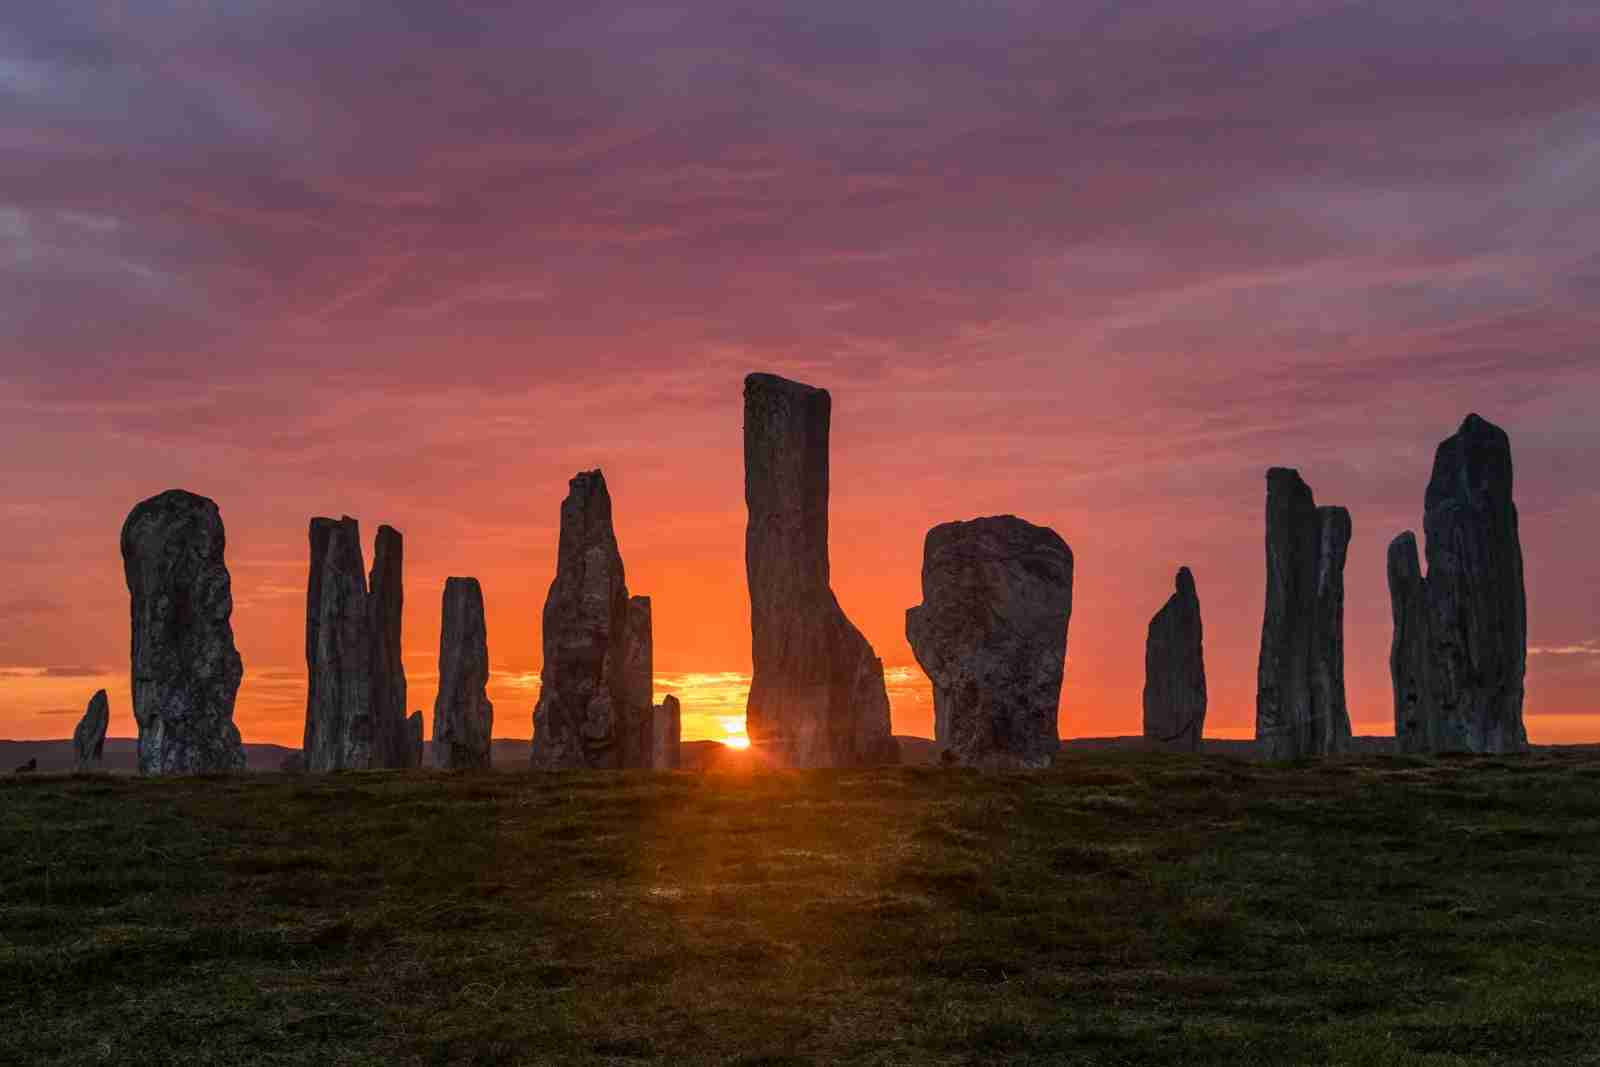 Callanish Standing Stones, Isle of Lewis, Outer Hebrides, Scotland. (Photo by Petr Sommer Photography / Shutterstock)